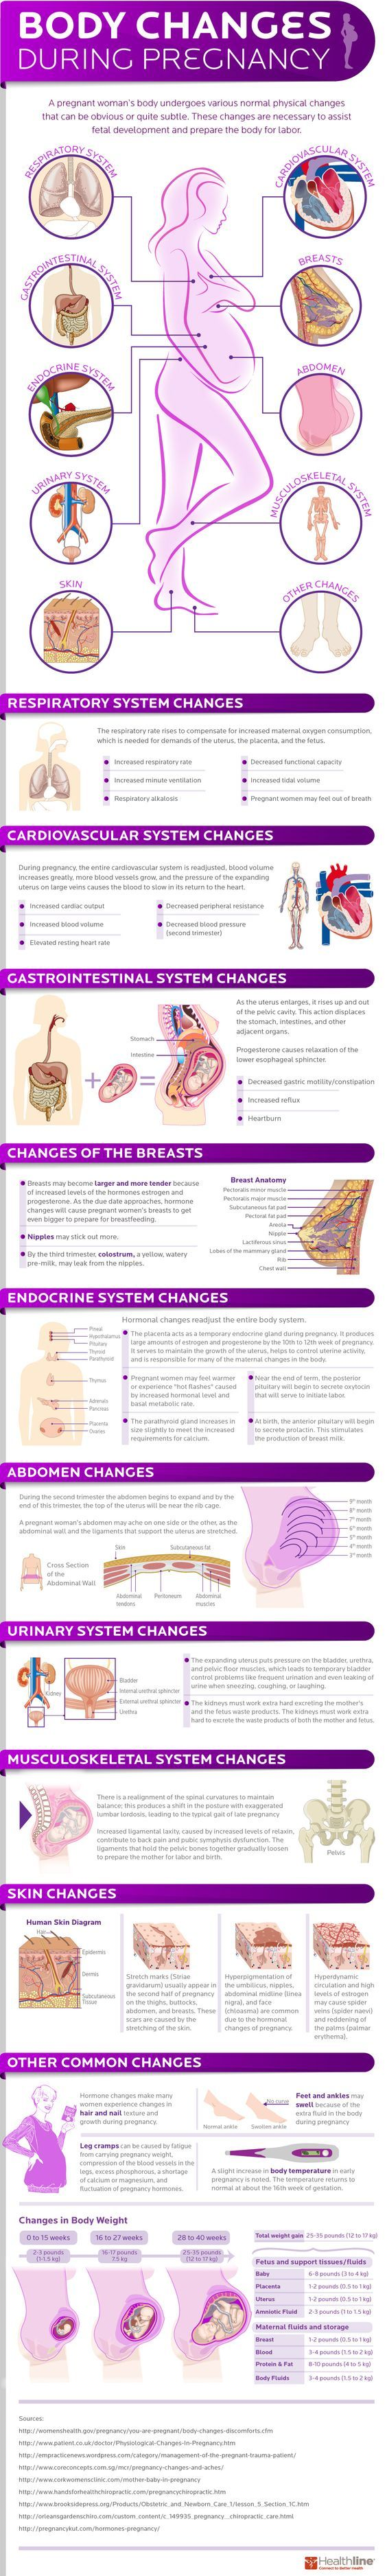 Reasons to Keep Exercising While Pregnant | Pregnancy Tips *** Click image for more details. #PregnancyTips